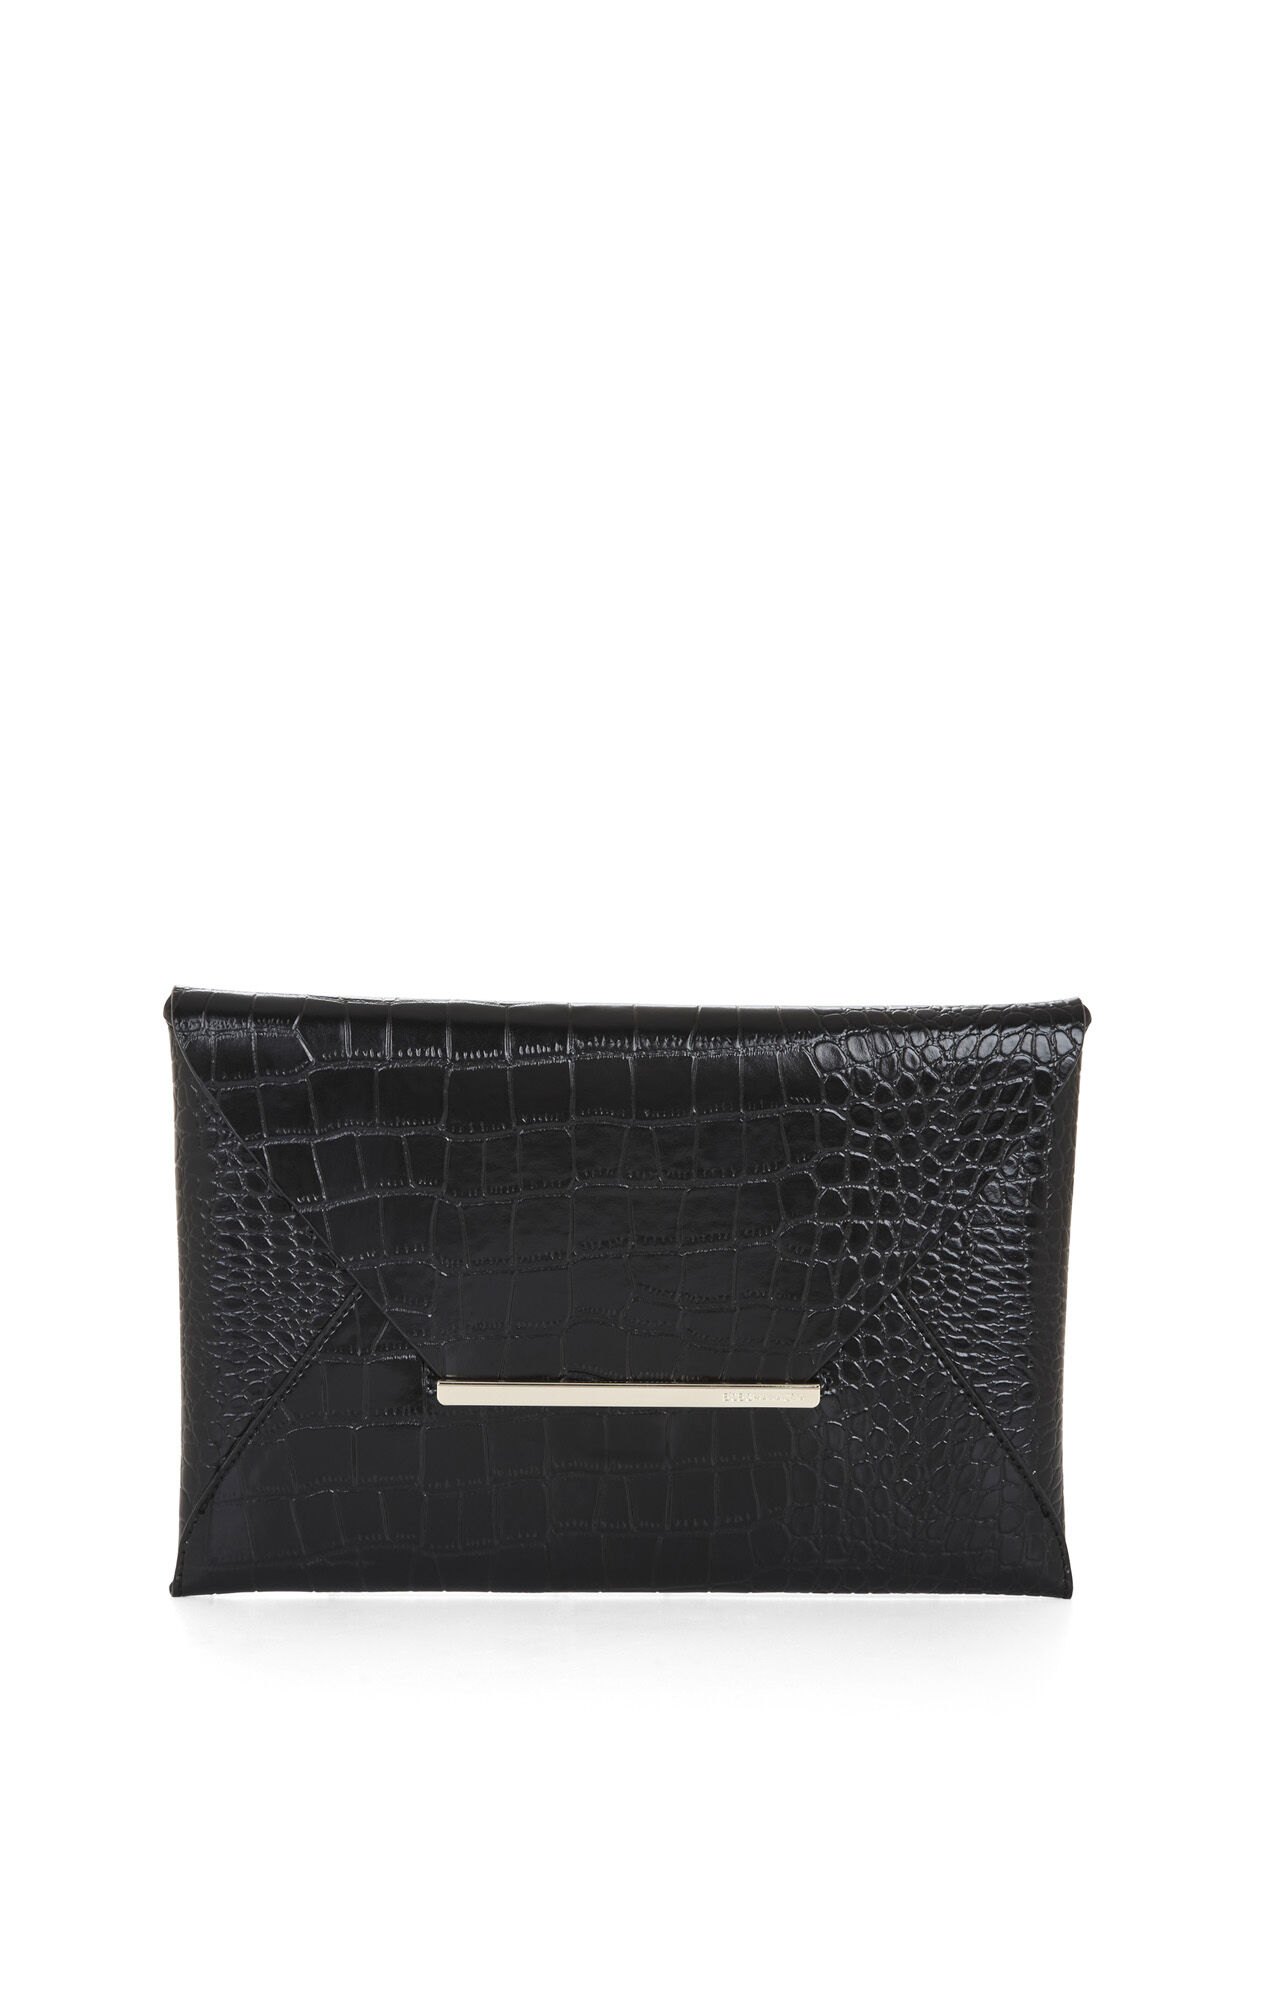 Harlow Crocodile Envelope Clutch